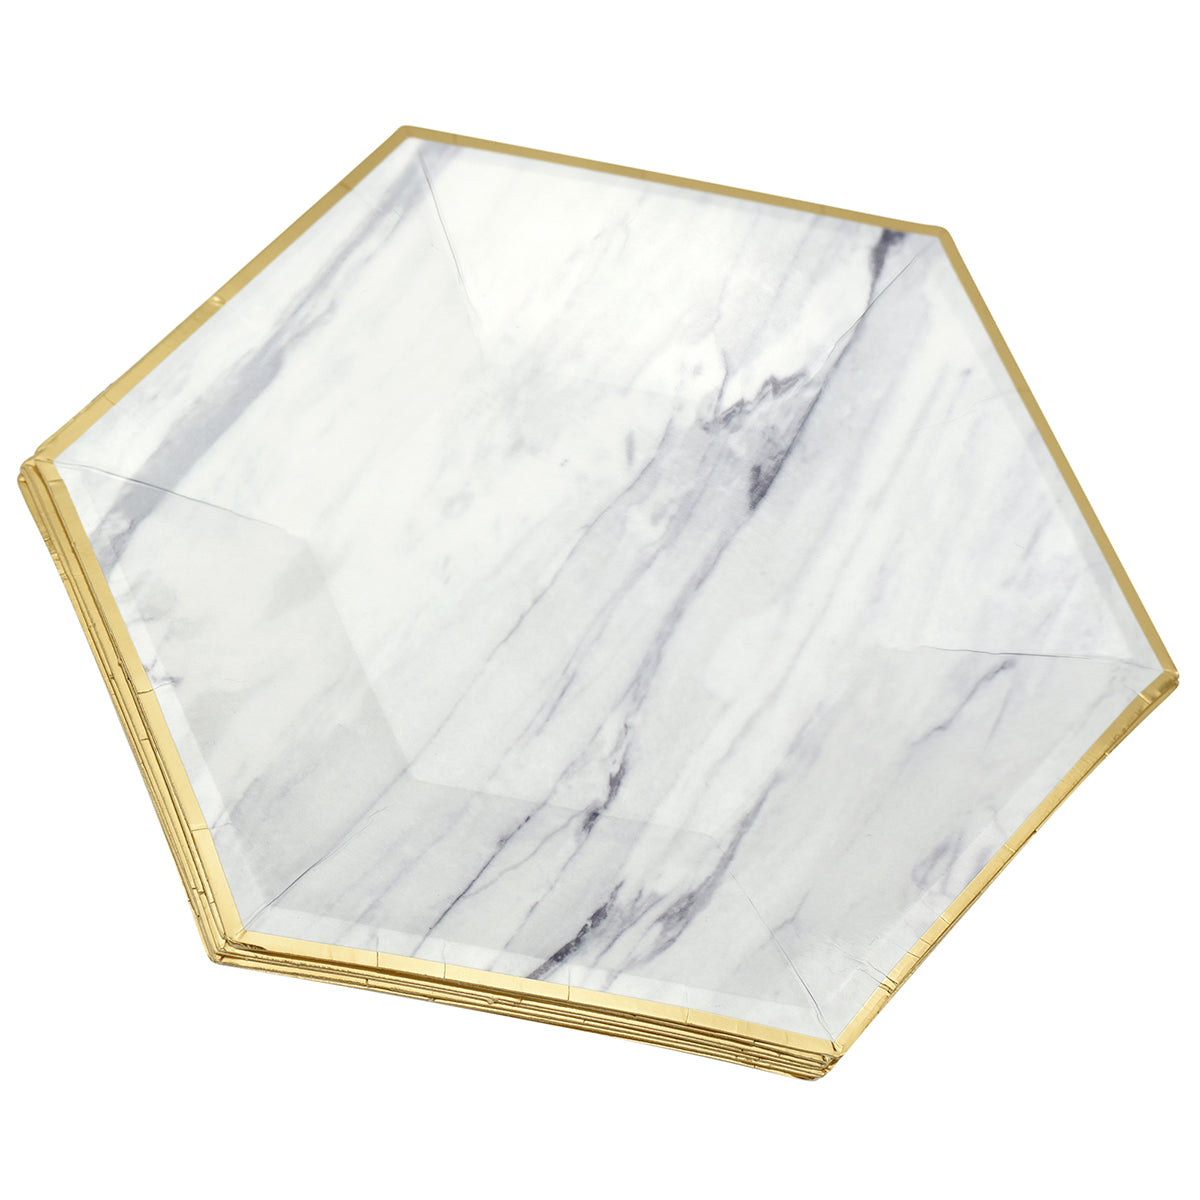 A hexagon paper plate with marble design